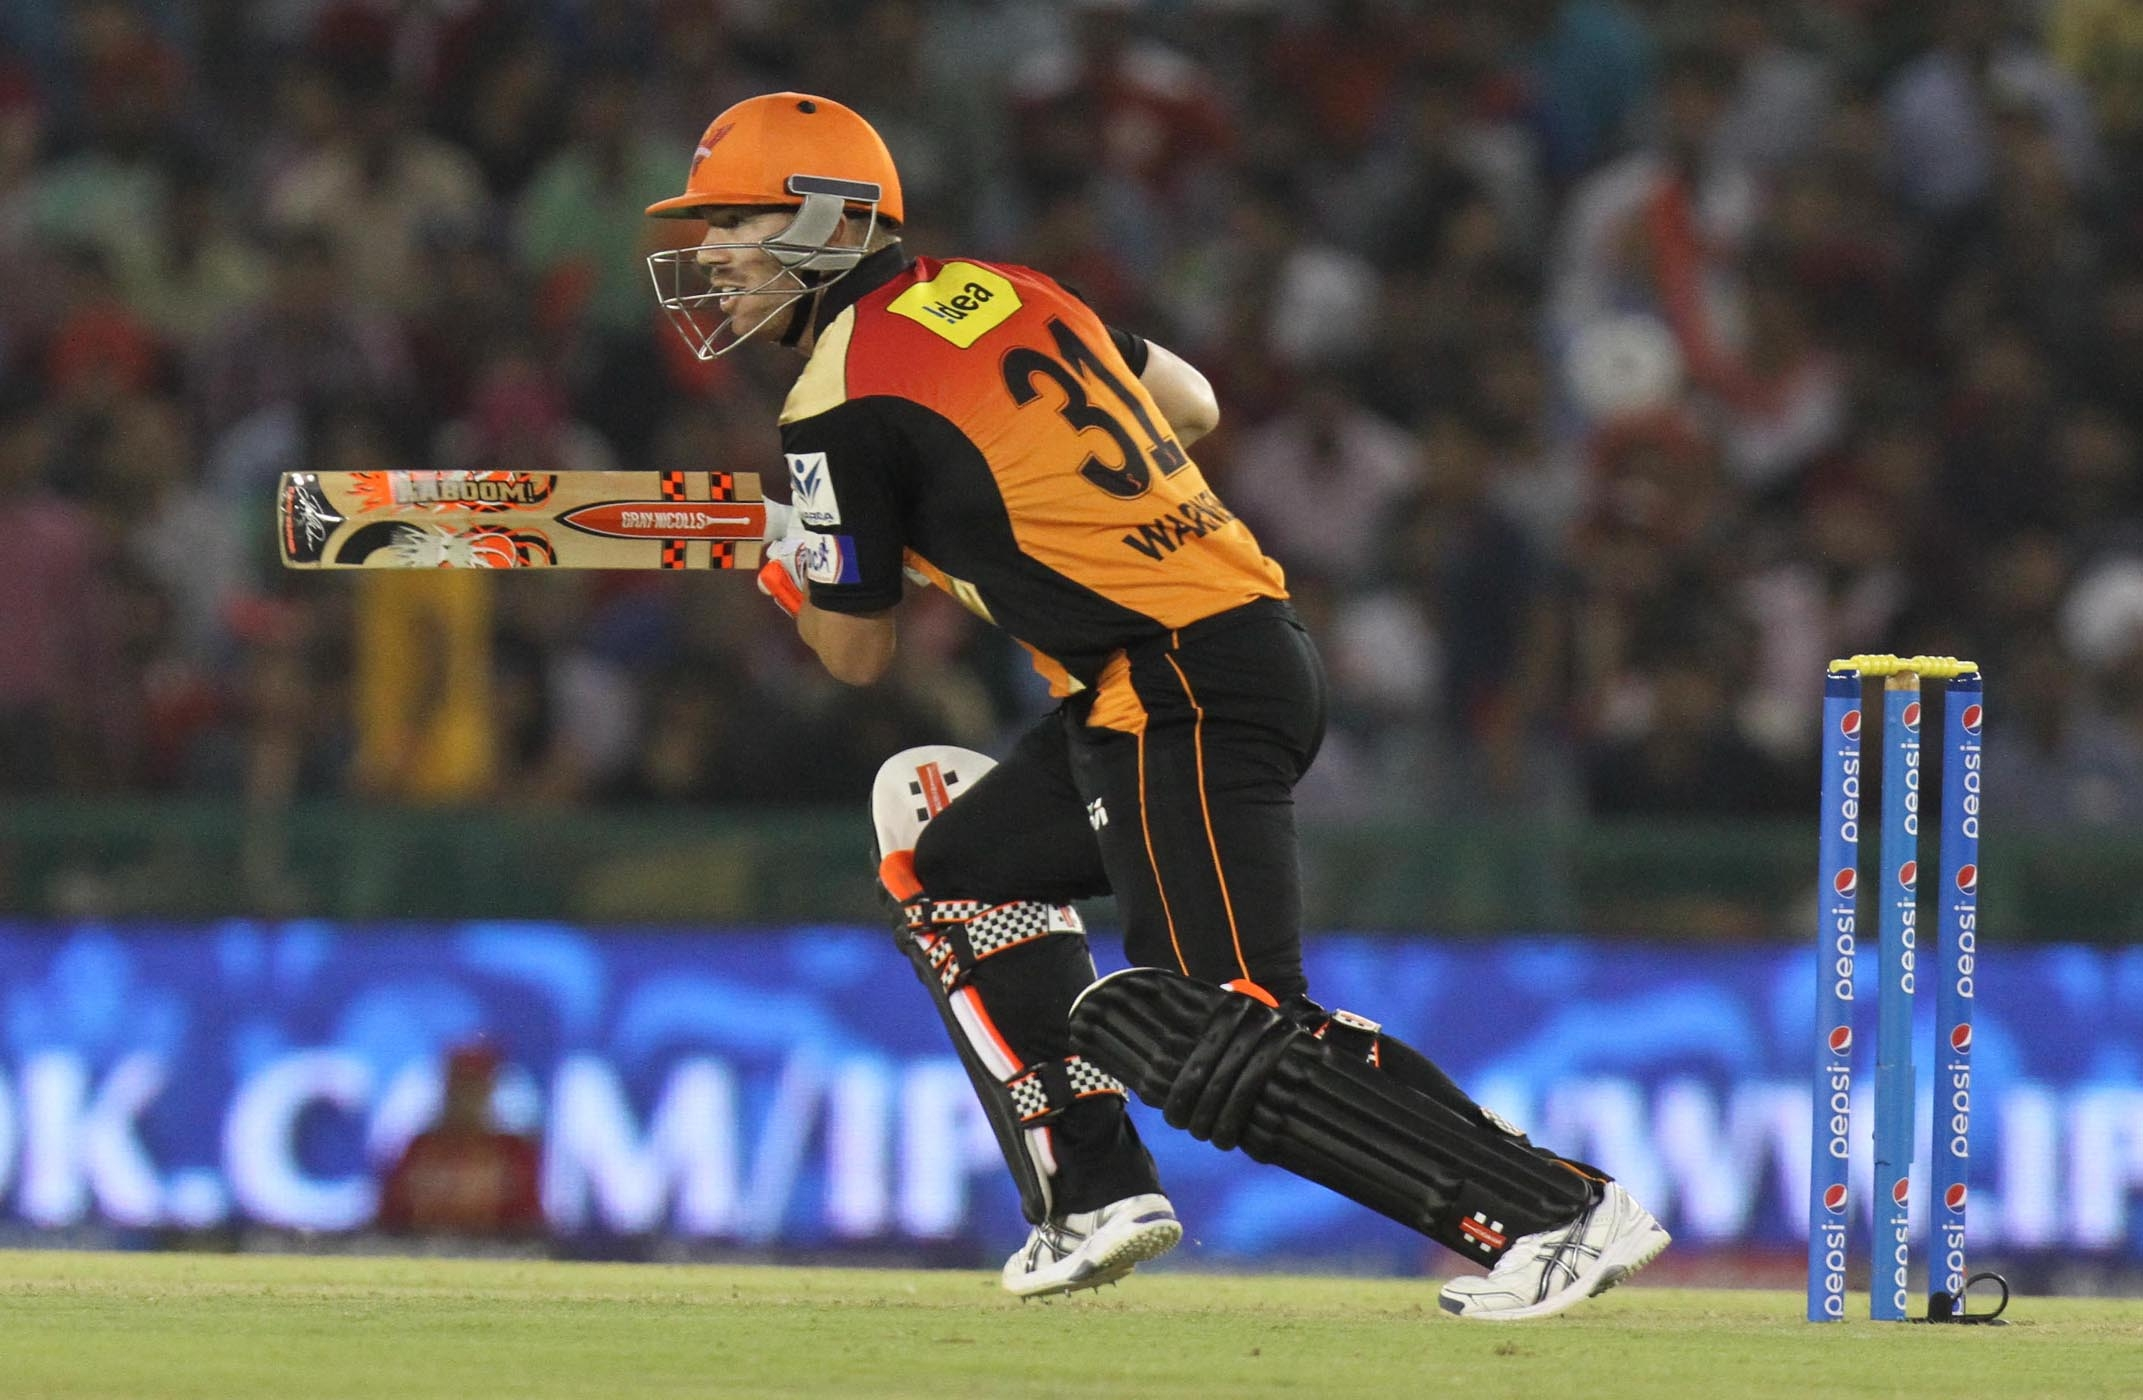 David Warner should be picked at any cost for the second match of the weekend